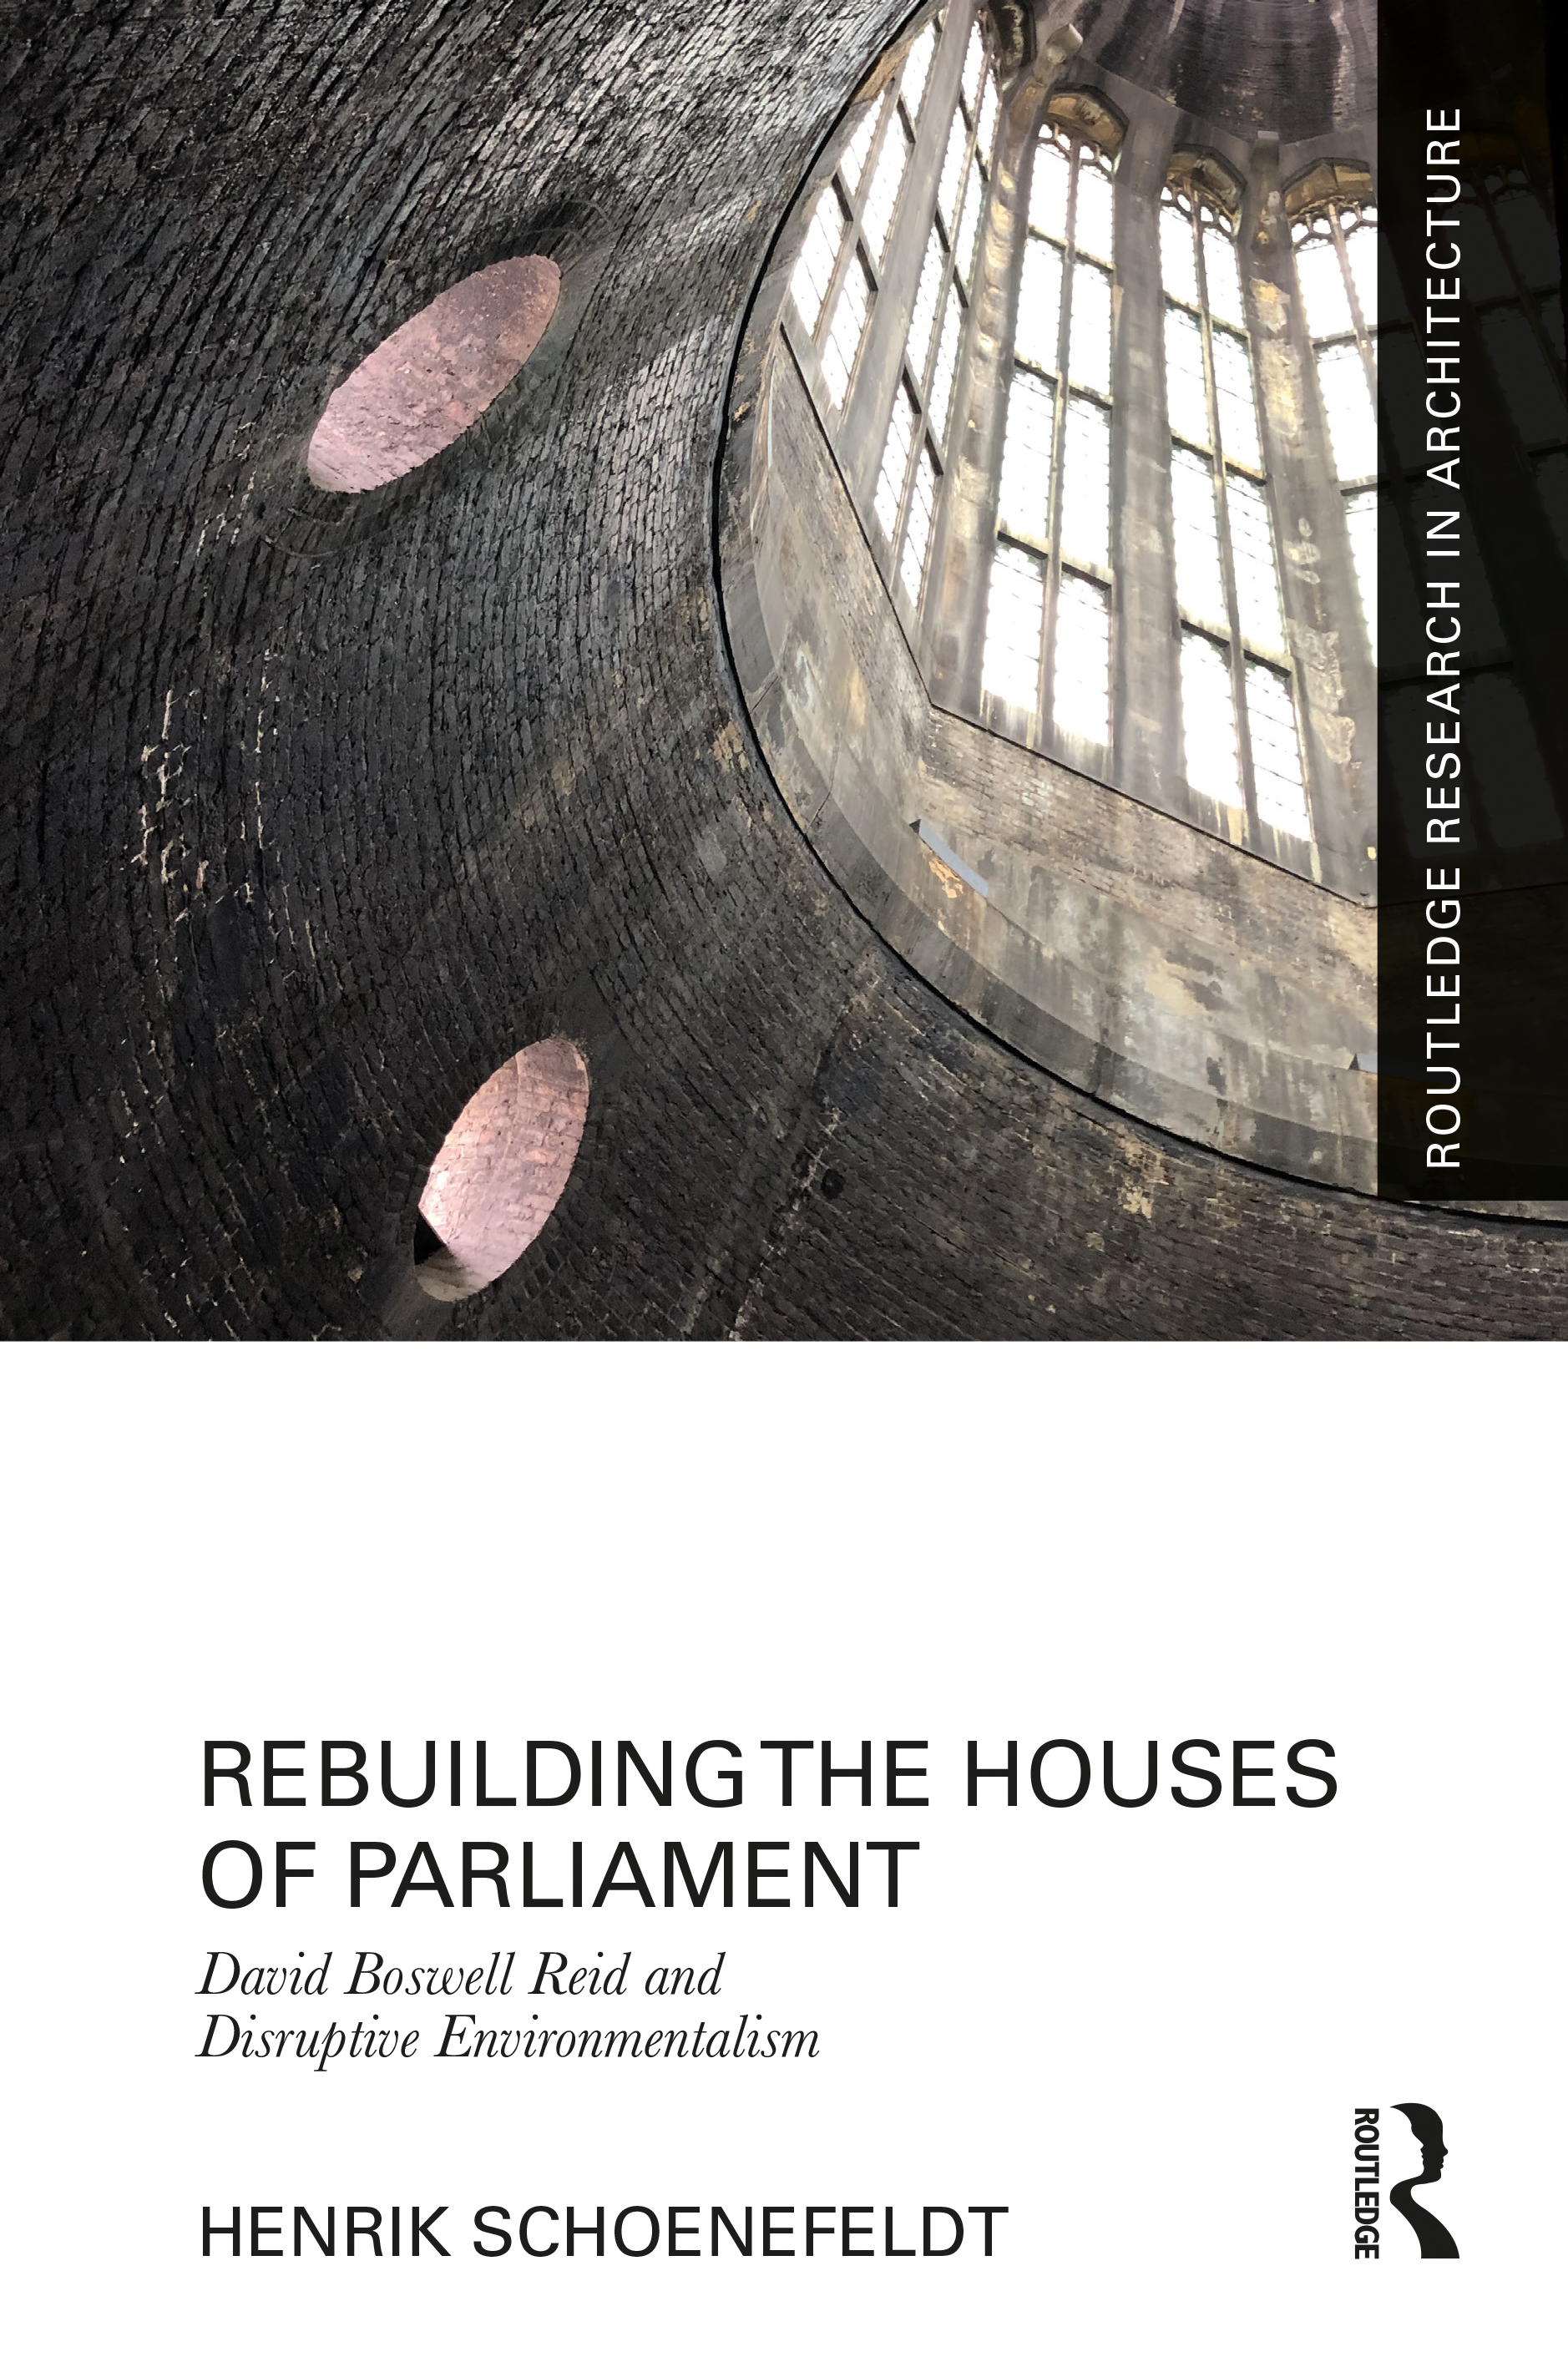 Rebuilding the Houses of Parliament